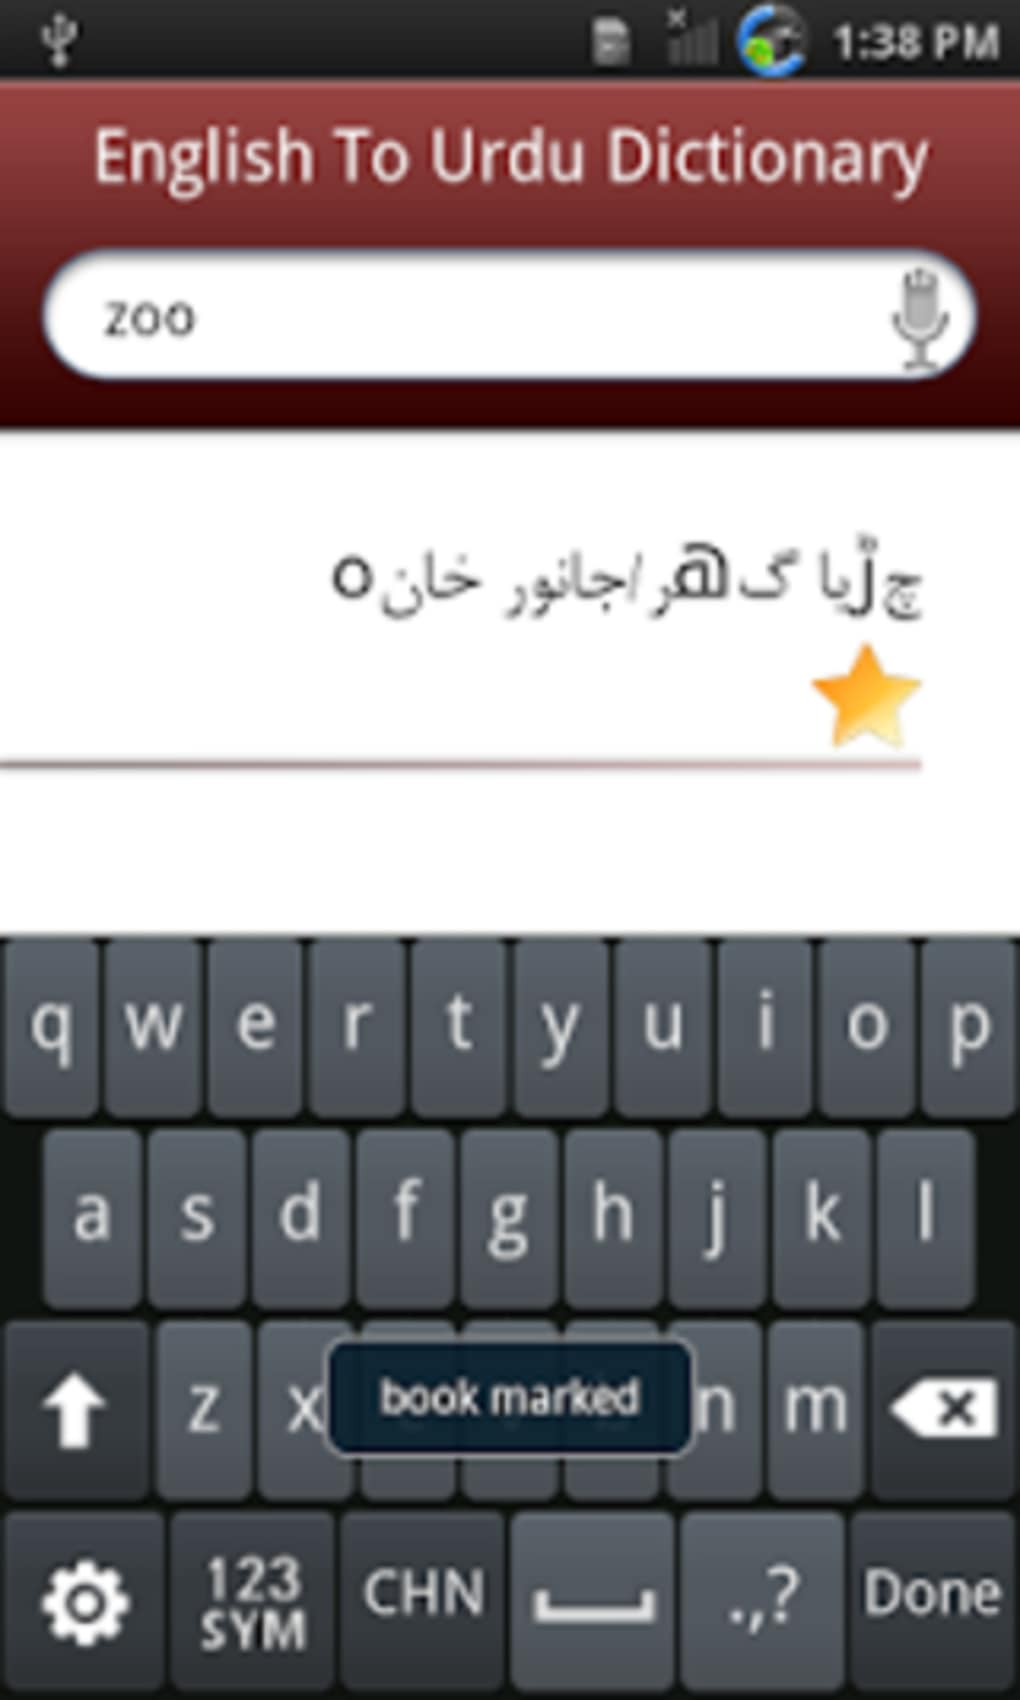 English Urdu Dictionary for Android - Download